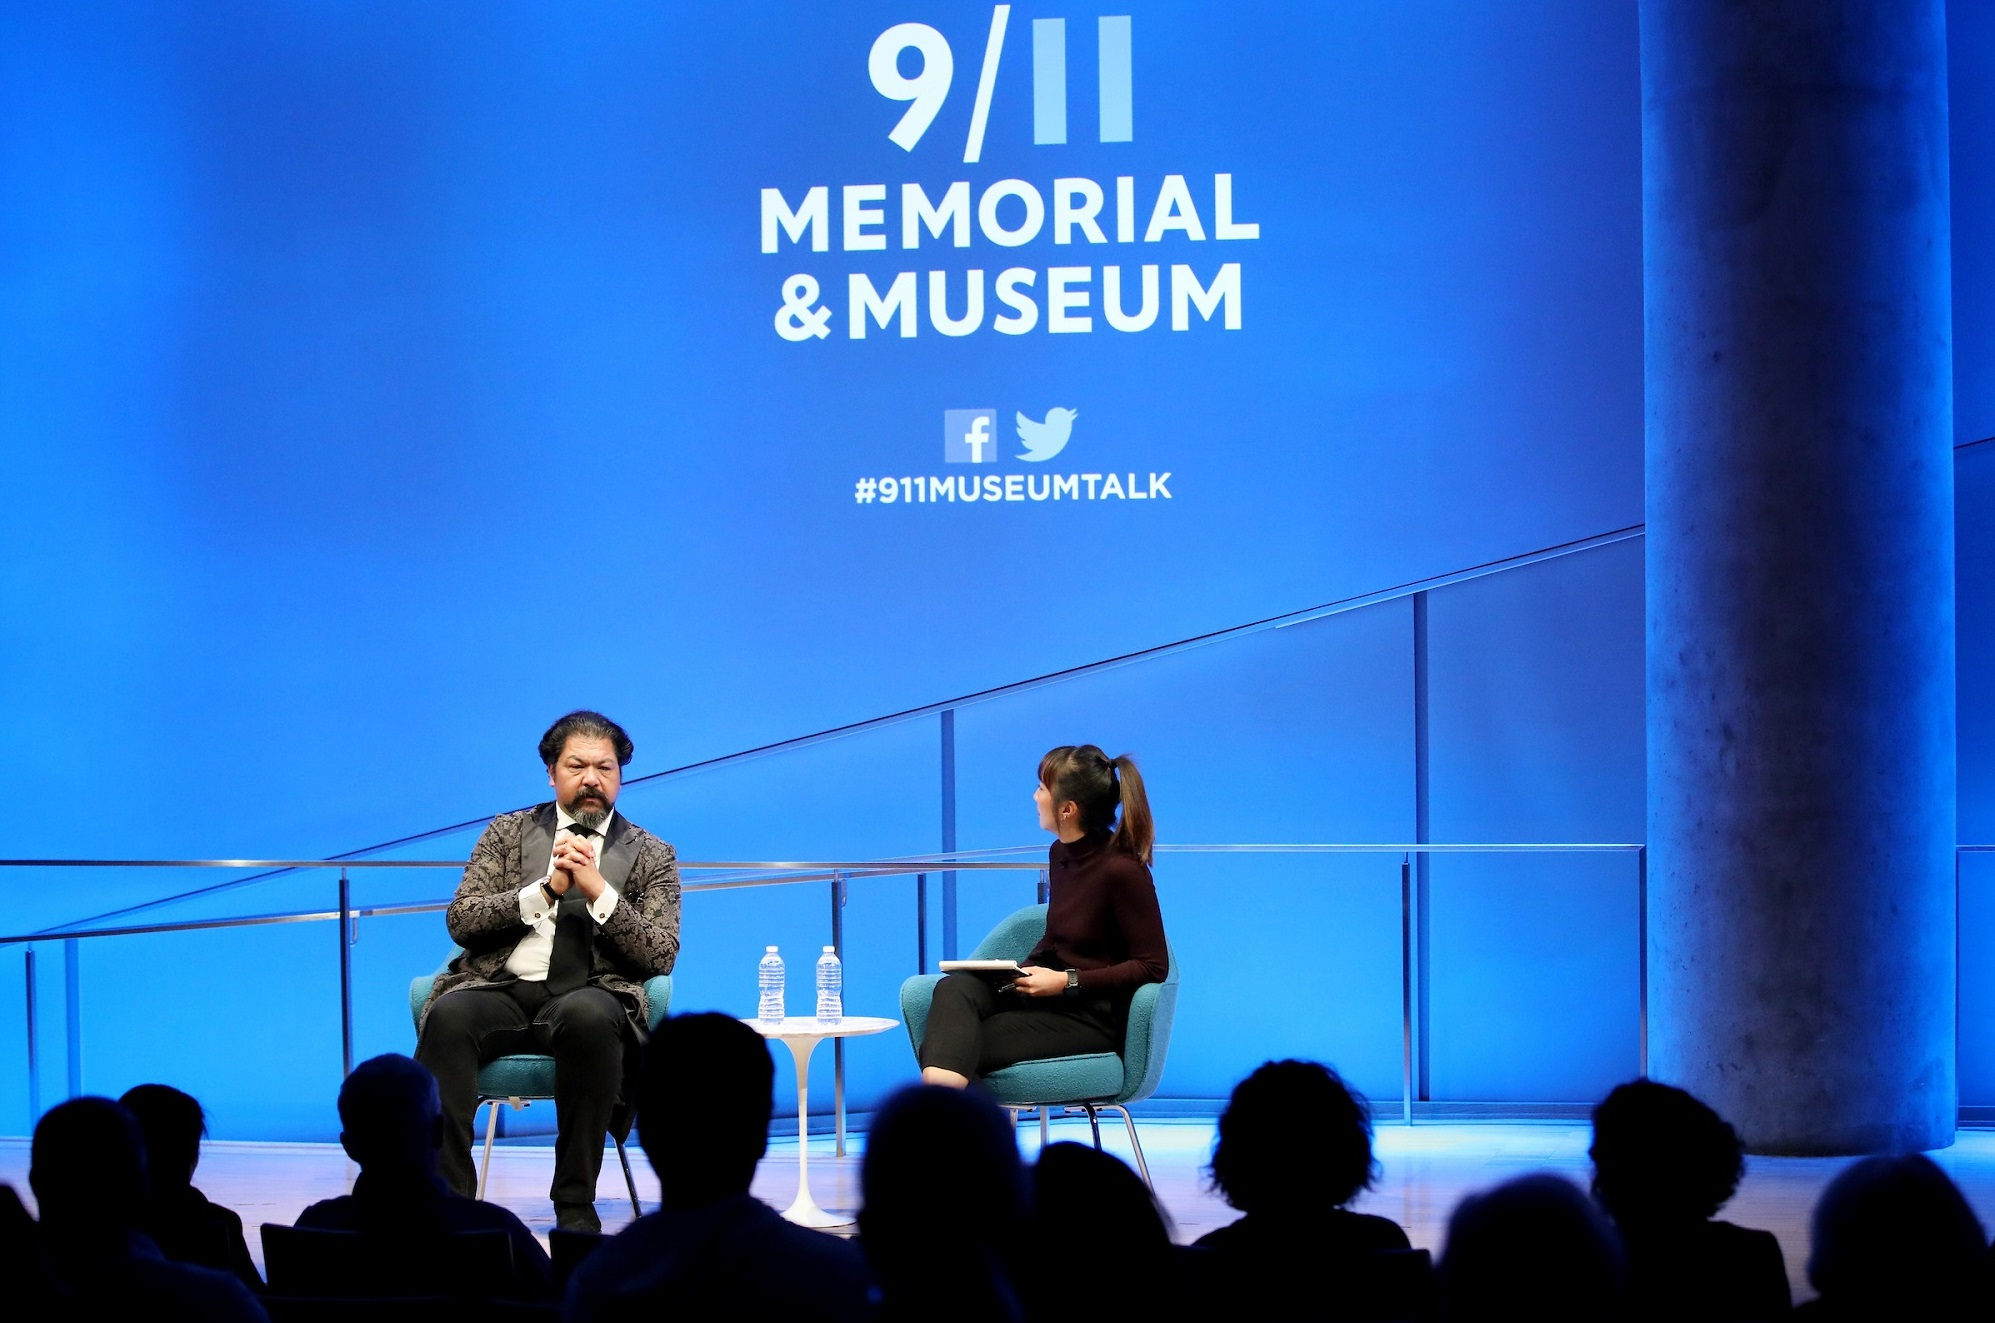 This wide-angle photo of the Museum Auditorium shows Cellist Karim Wasfi and a woman hosting the event seated onstage in the distance. Wasfi has his hands clasped together as he speaks. A wall behind the two participants is lit blue and features the logo of the 9/11 Memorial & Museum.